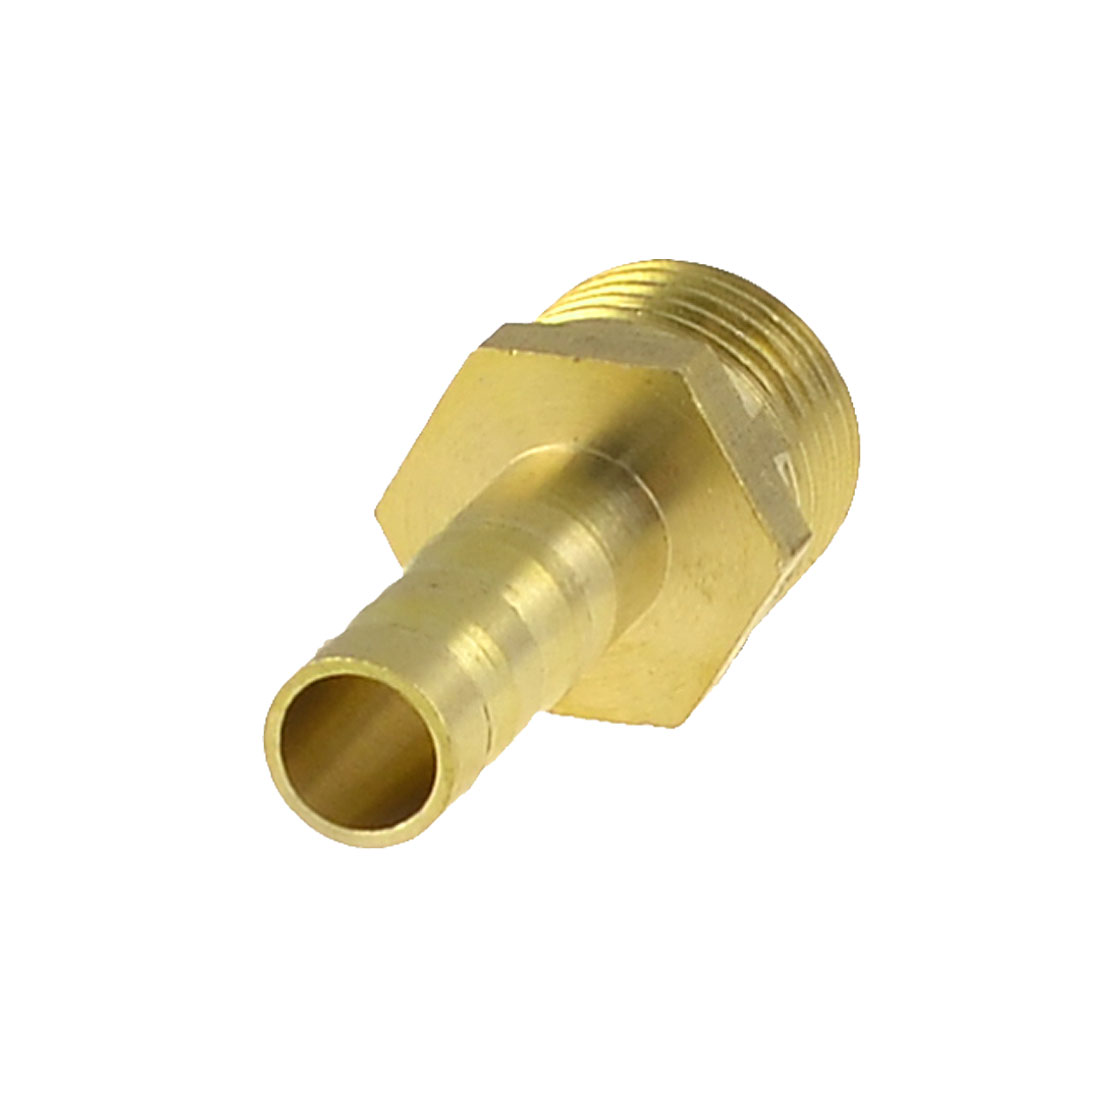 "Brass 6mm Hose Barb to 1/4"" PT Male Thread Pneumatic Coupling Connector"